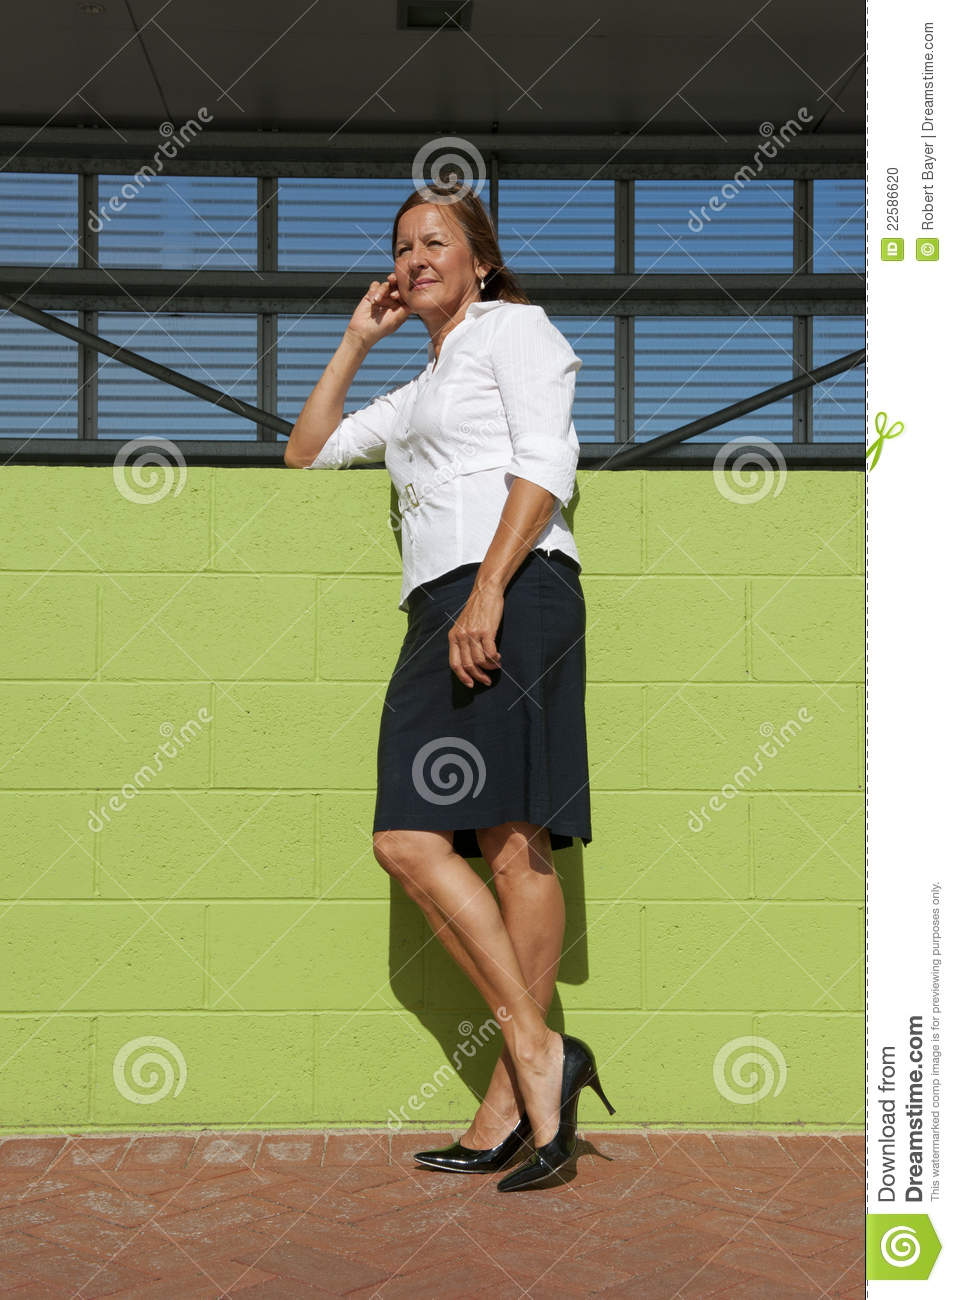 Confident Business Woman Posing Outdoor Stock Photo - Confident Business Woman Posing Outdoor Stock Photo - Image: 22586620